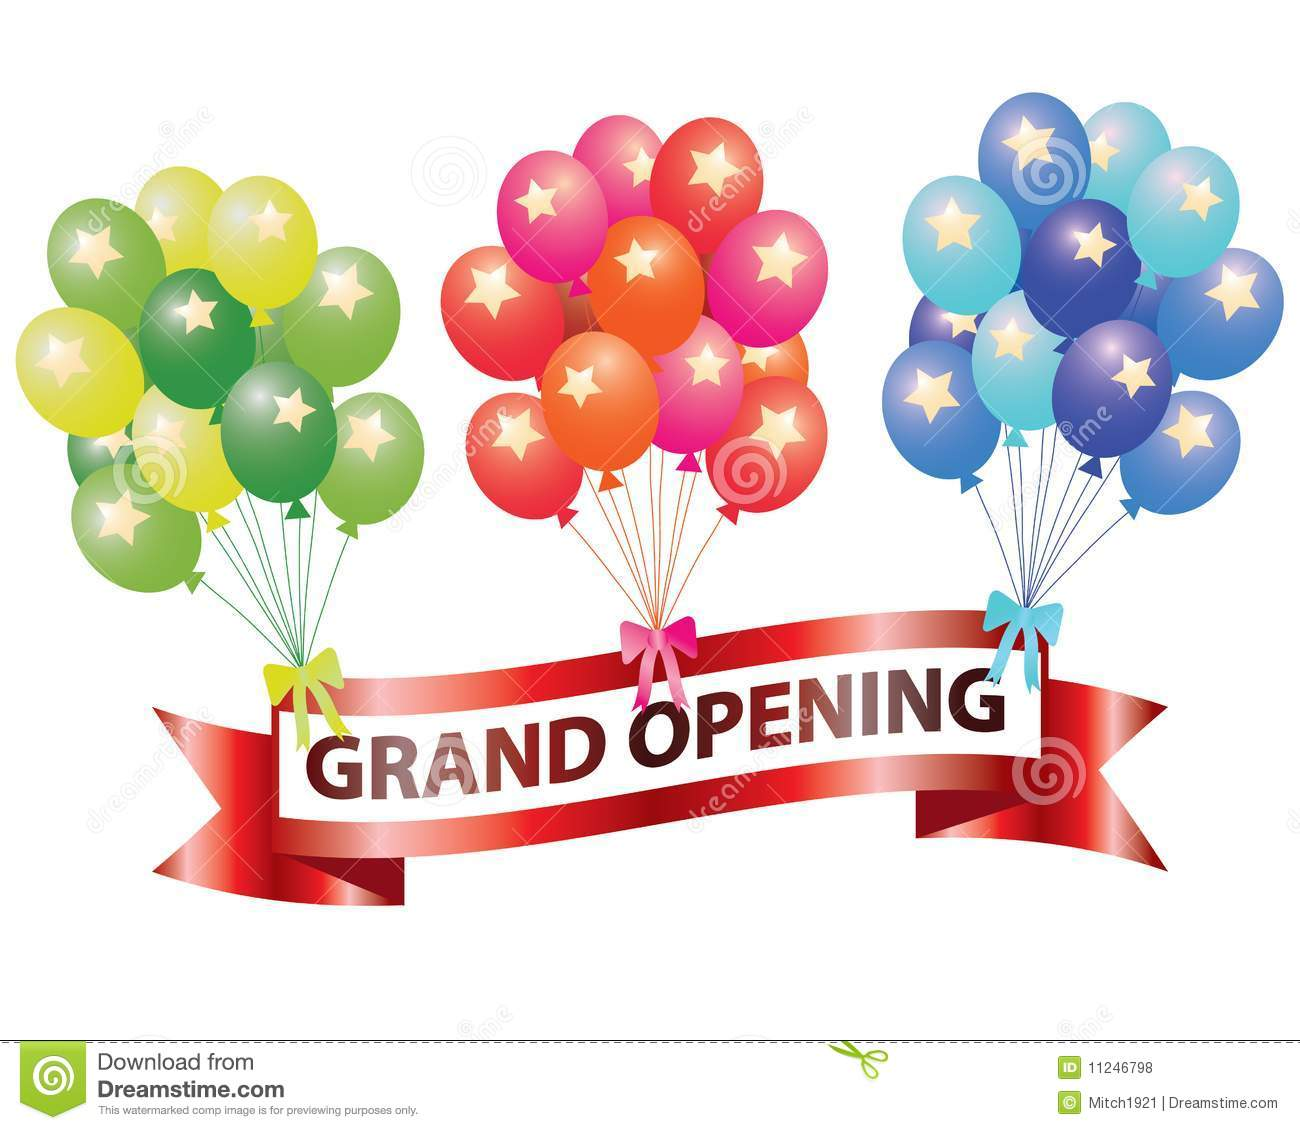 Grand Opening Royalty Free Stock Photos - Image: 11246798